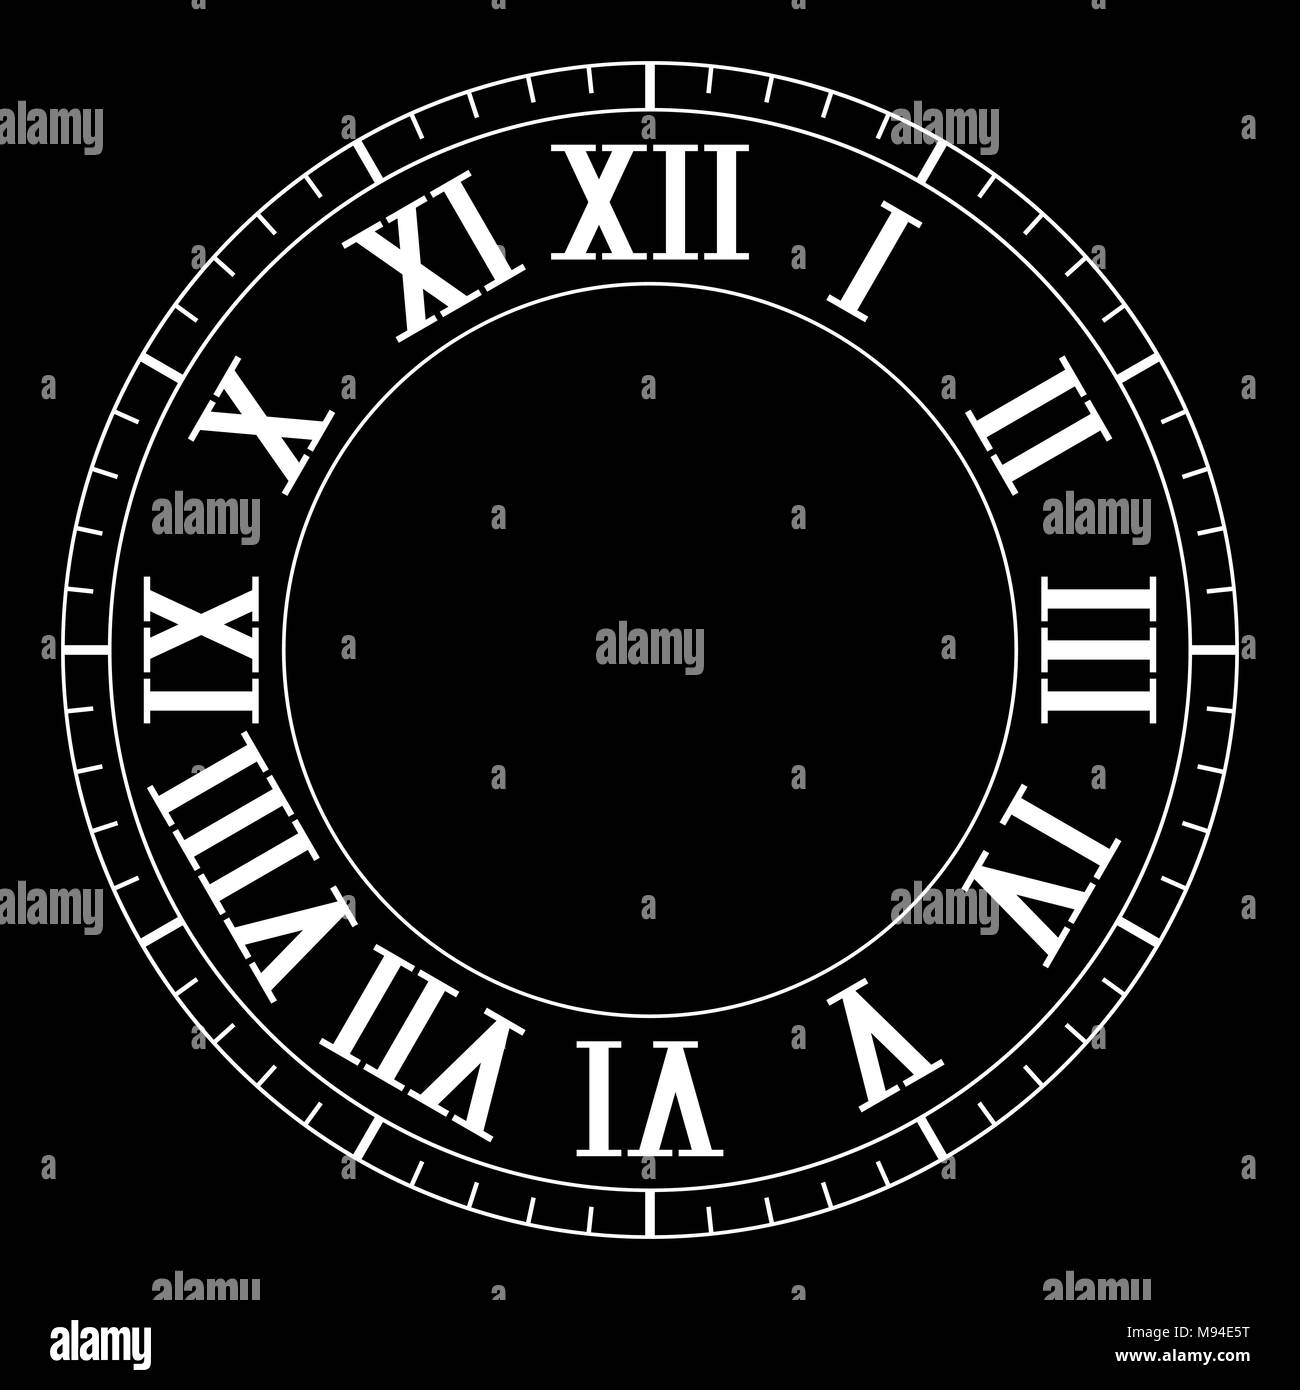 Clock face with roman numerals on black background - Stock Image